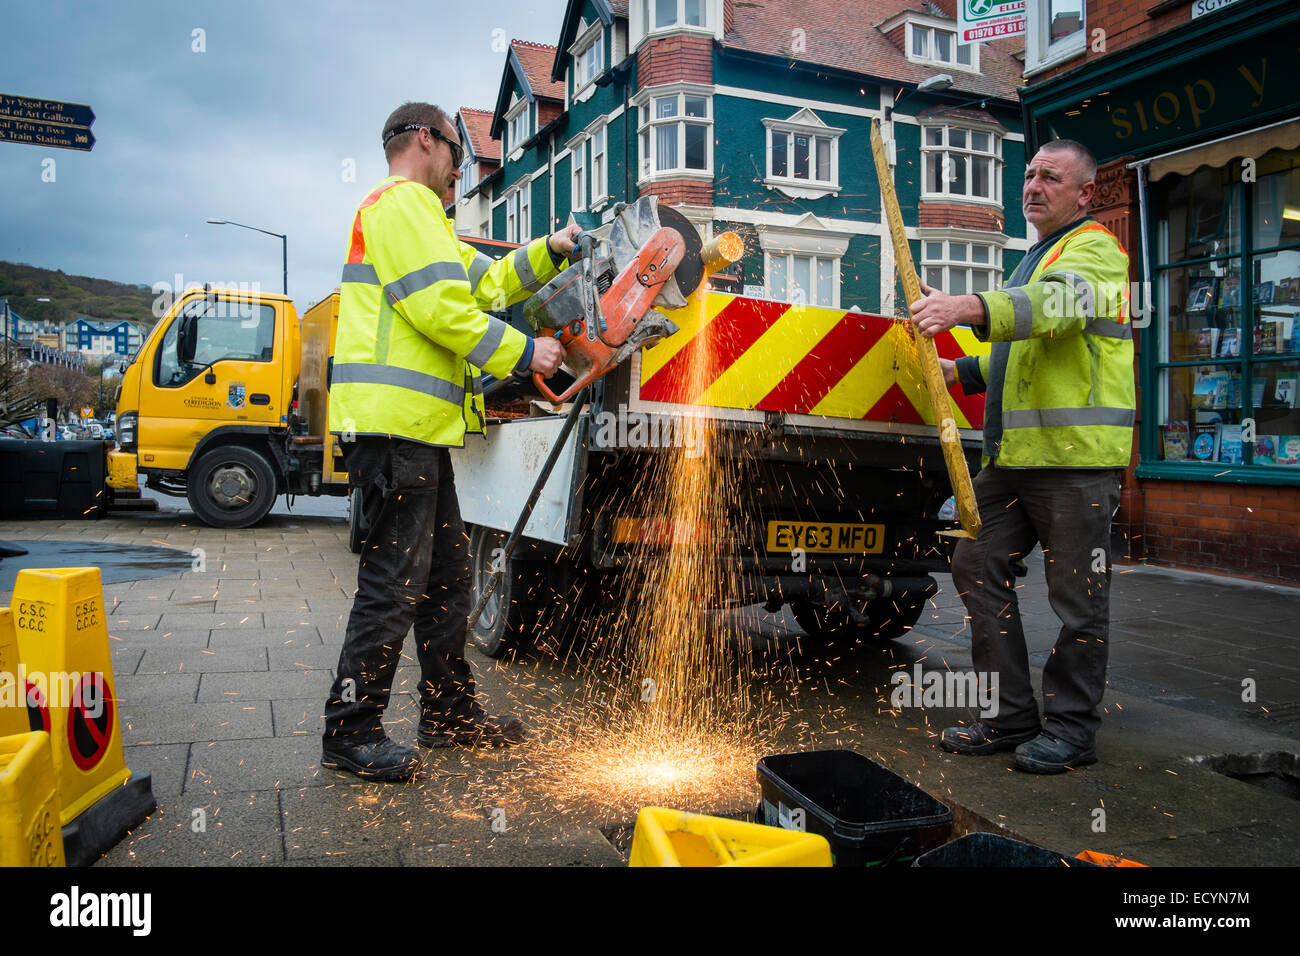 A two-man crew of Ceredigion County Council local authority direct labour workers wearing hi-vis yellow jackets Stock Photo